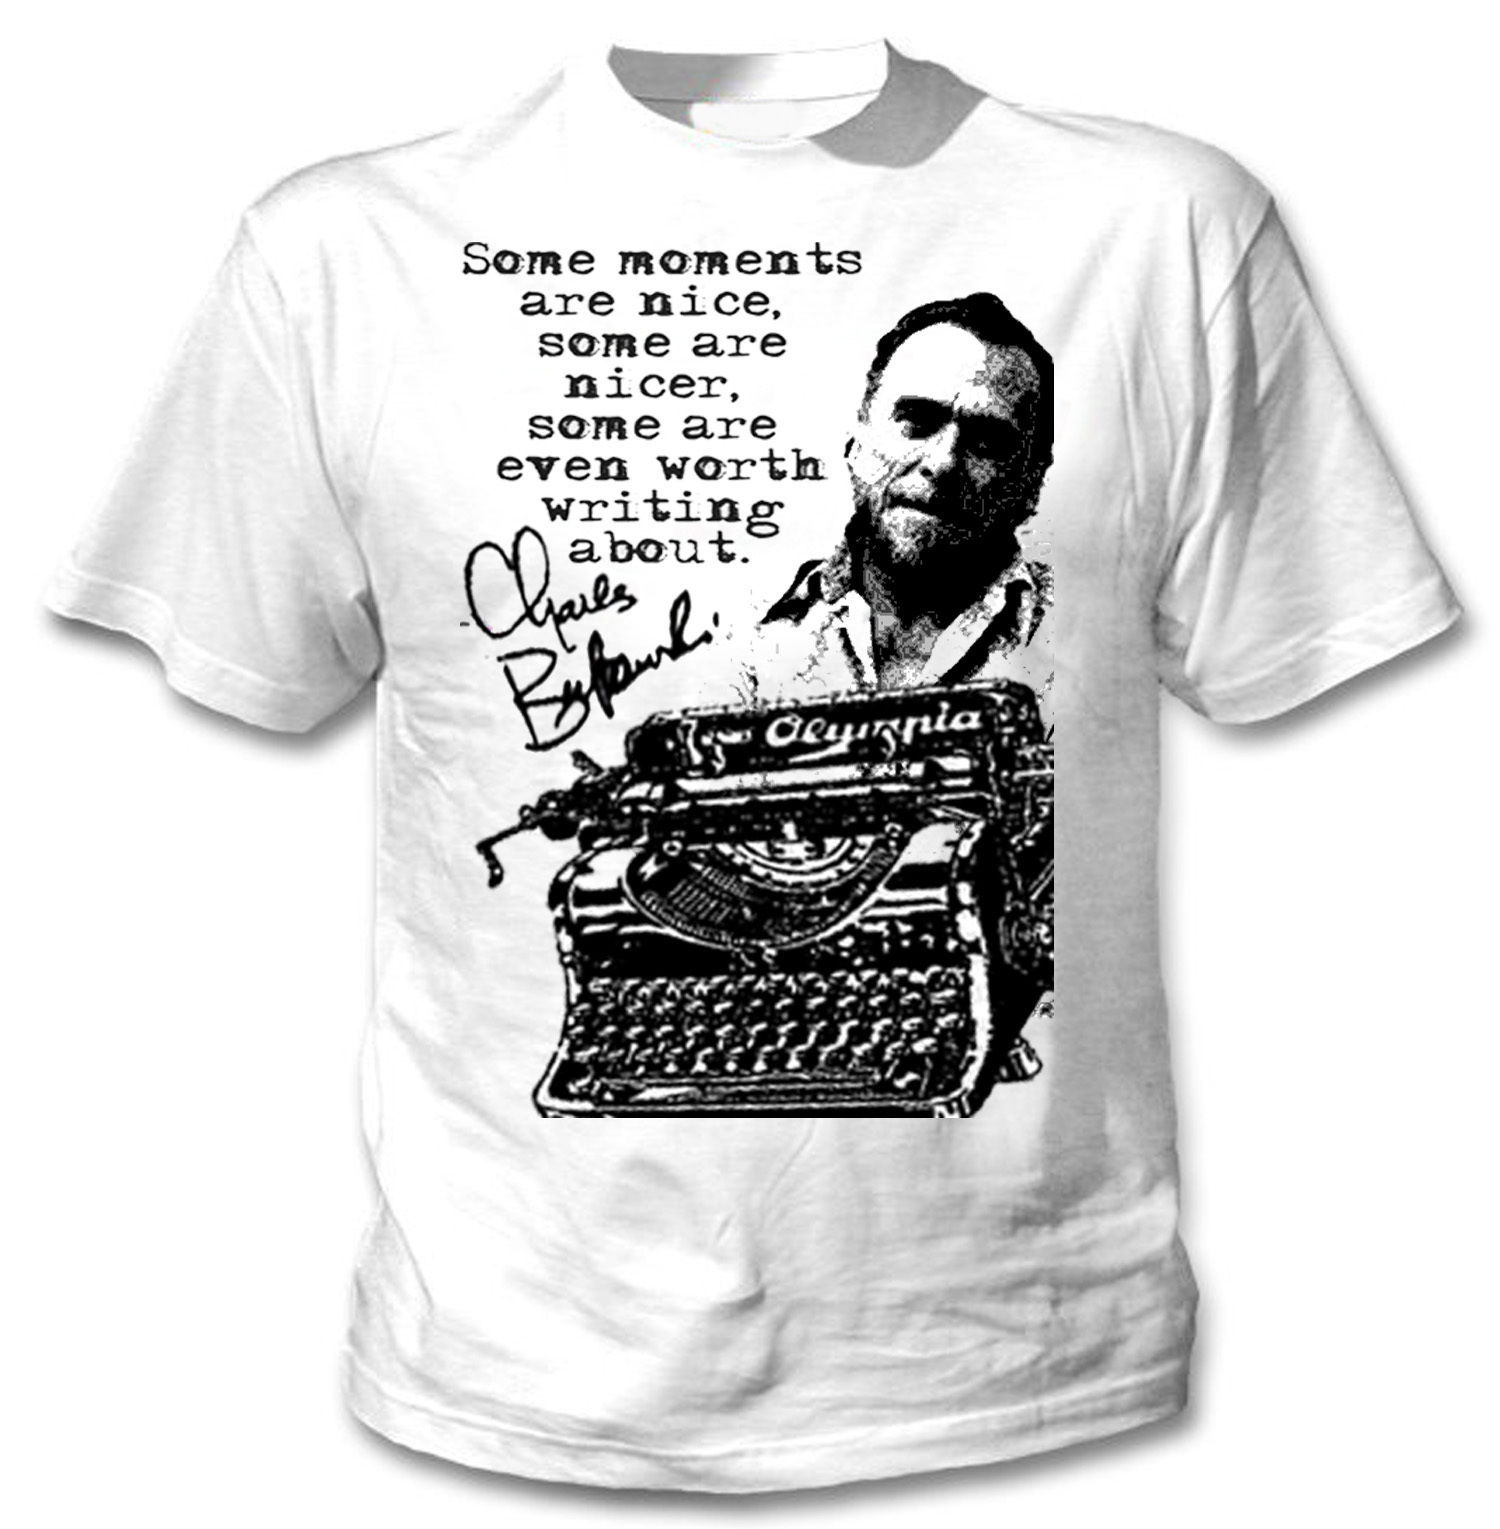 Primary image for CHARLES BUKOWSKI SOME MOMENTS 1 - NEW AMAZING GRAPHIC TSHIRT- S-M-L-XL-XXL